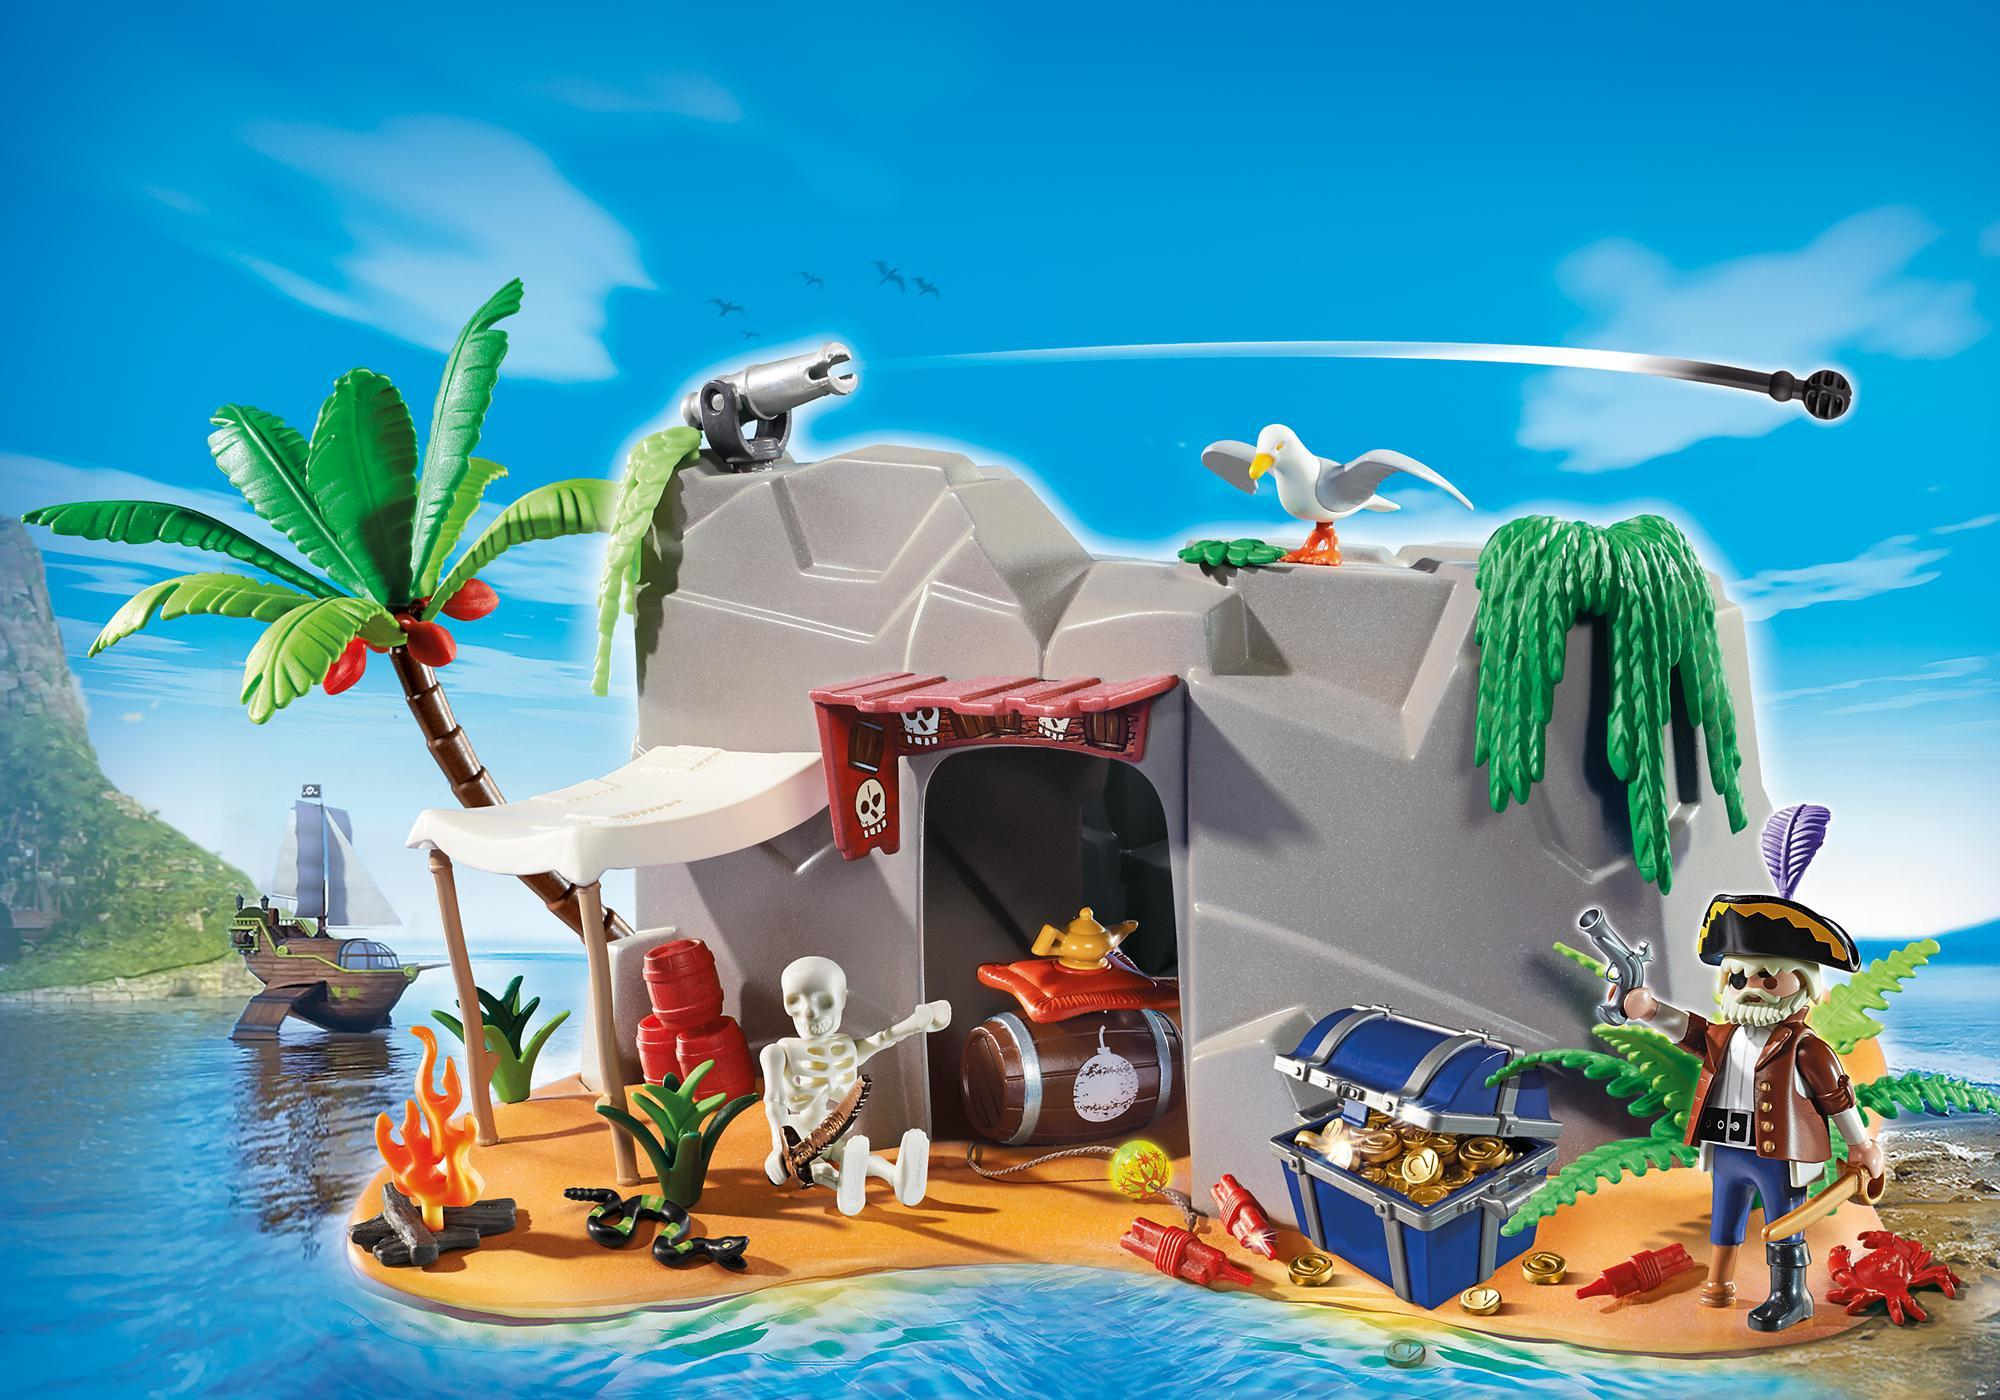 http://media.playmobil.com/i/playmobil/4797_product_detail/Пищера Пирата